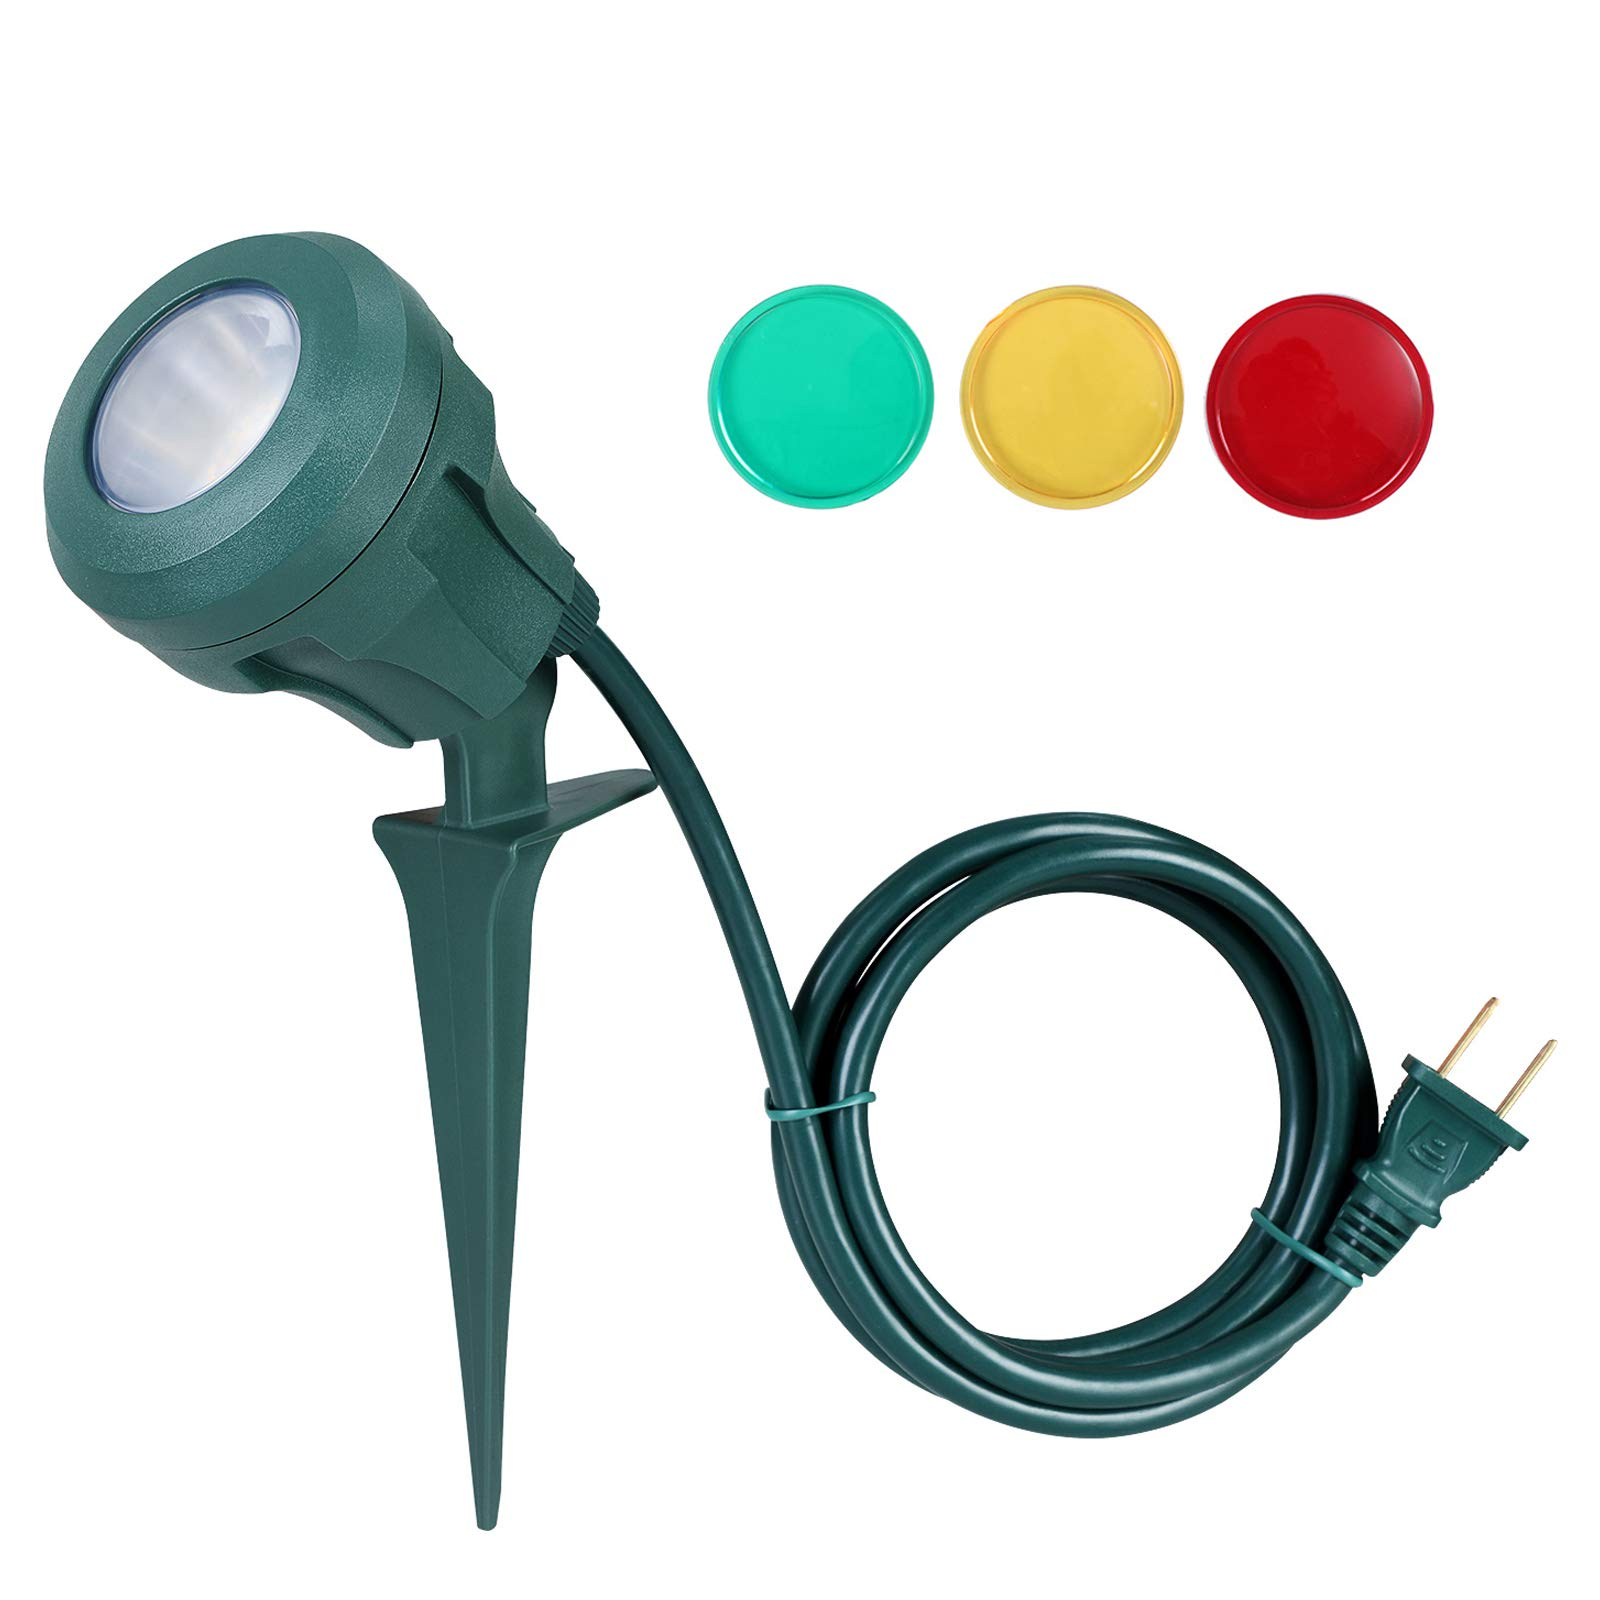 DEWENWILS Outdoor Spotlight Stake with Plug, 400lm LED Waterproof Flag Light with 3 Lenses (Red Yellow Green) for Halloween,Tree,Yard,5 FT Extension Cord,UL Listed by DEWENWILS